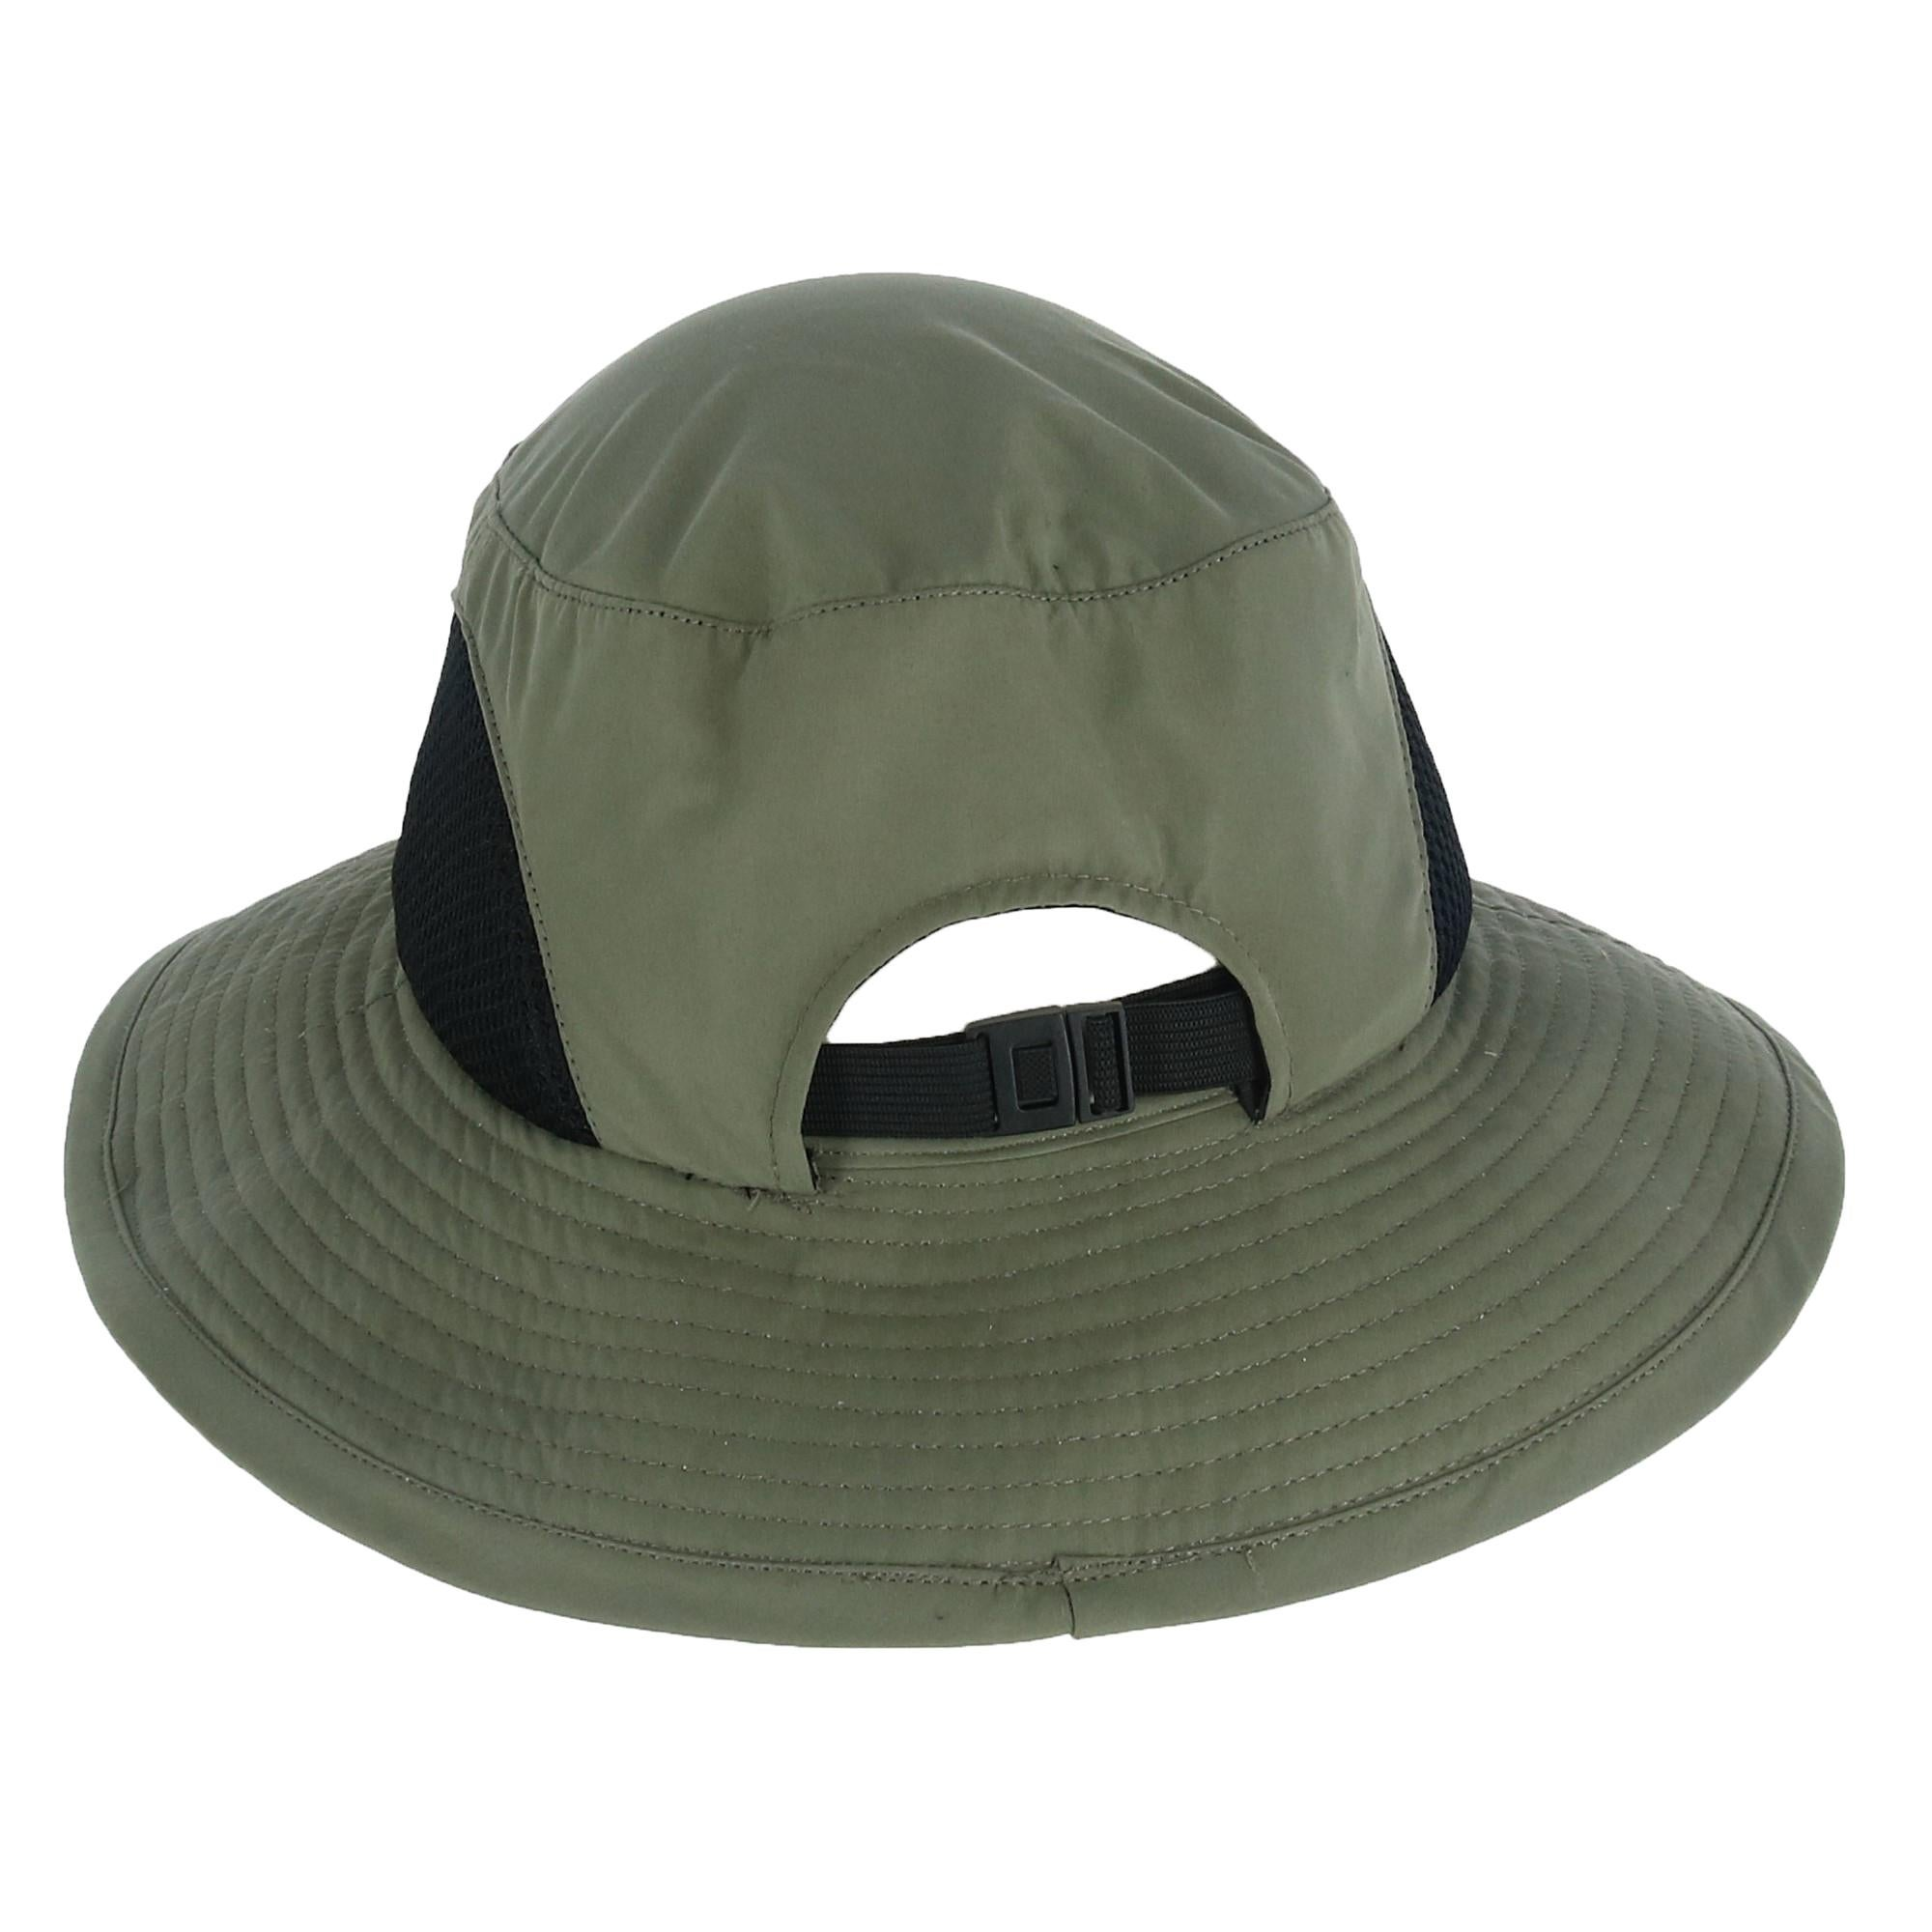 ffac57412c6487 Shop Kenny K Men's Breathable Bucket Hat with Chin Cord - Free ...